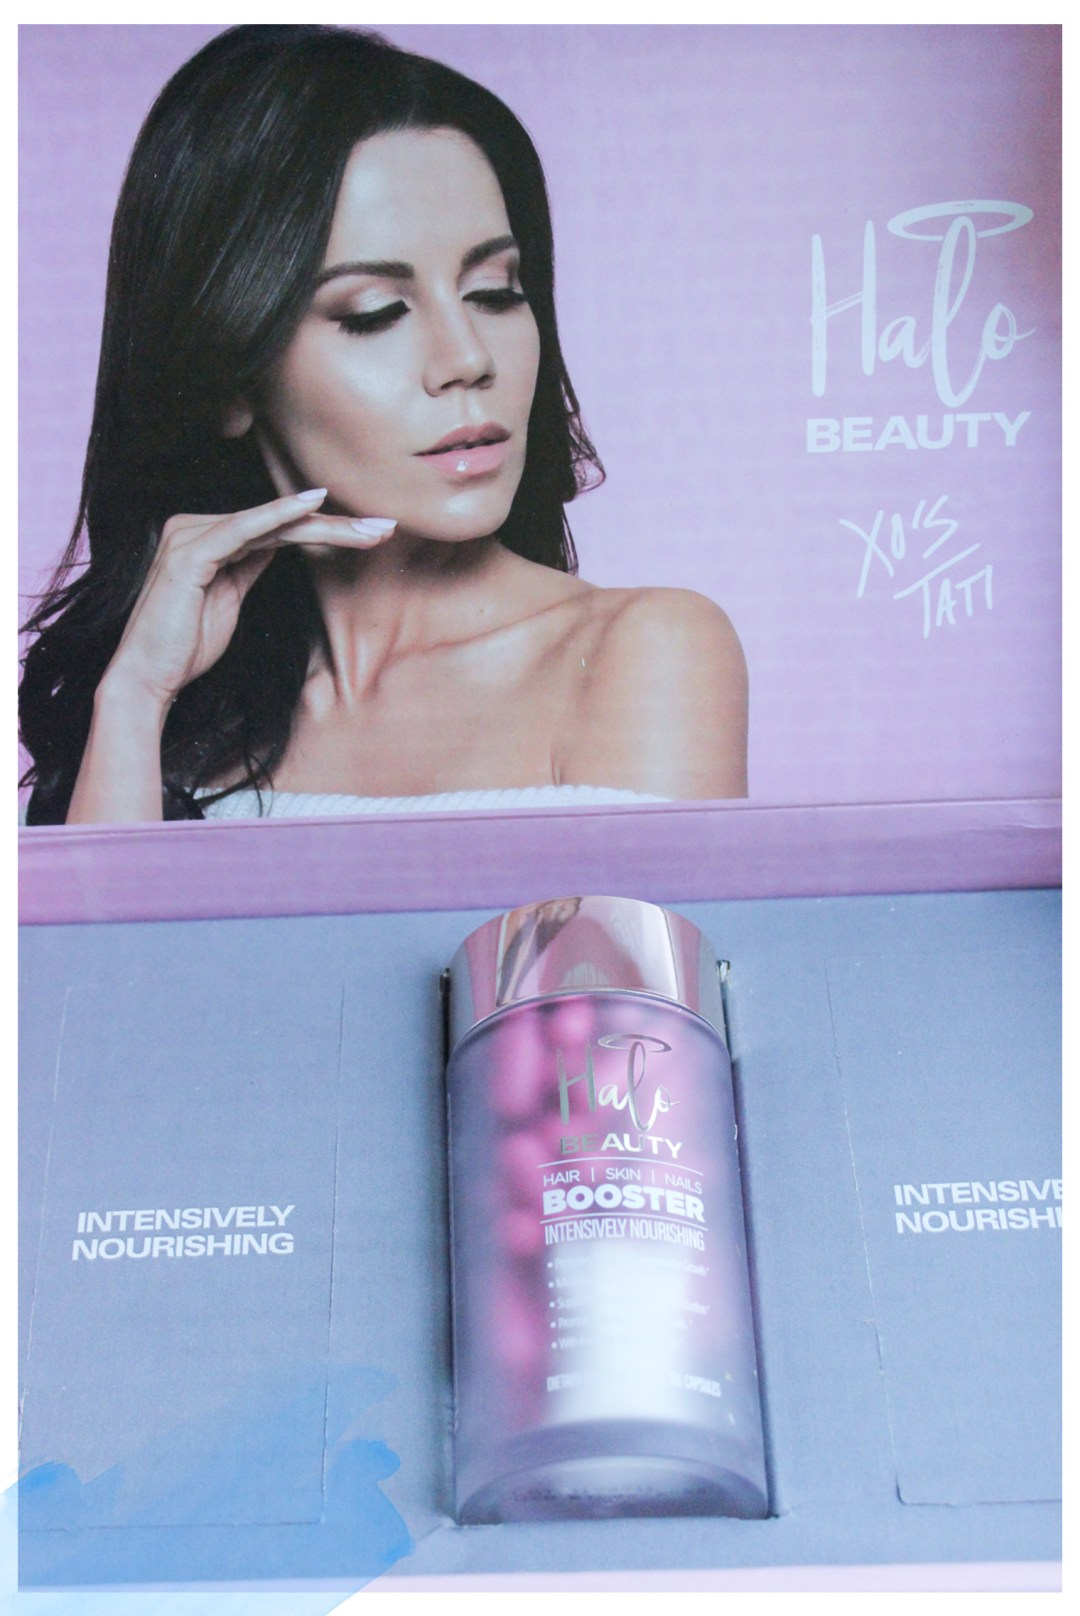 Halo Beauty Boosters